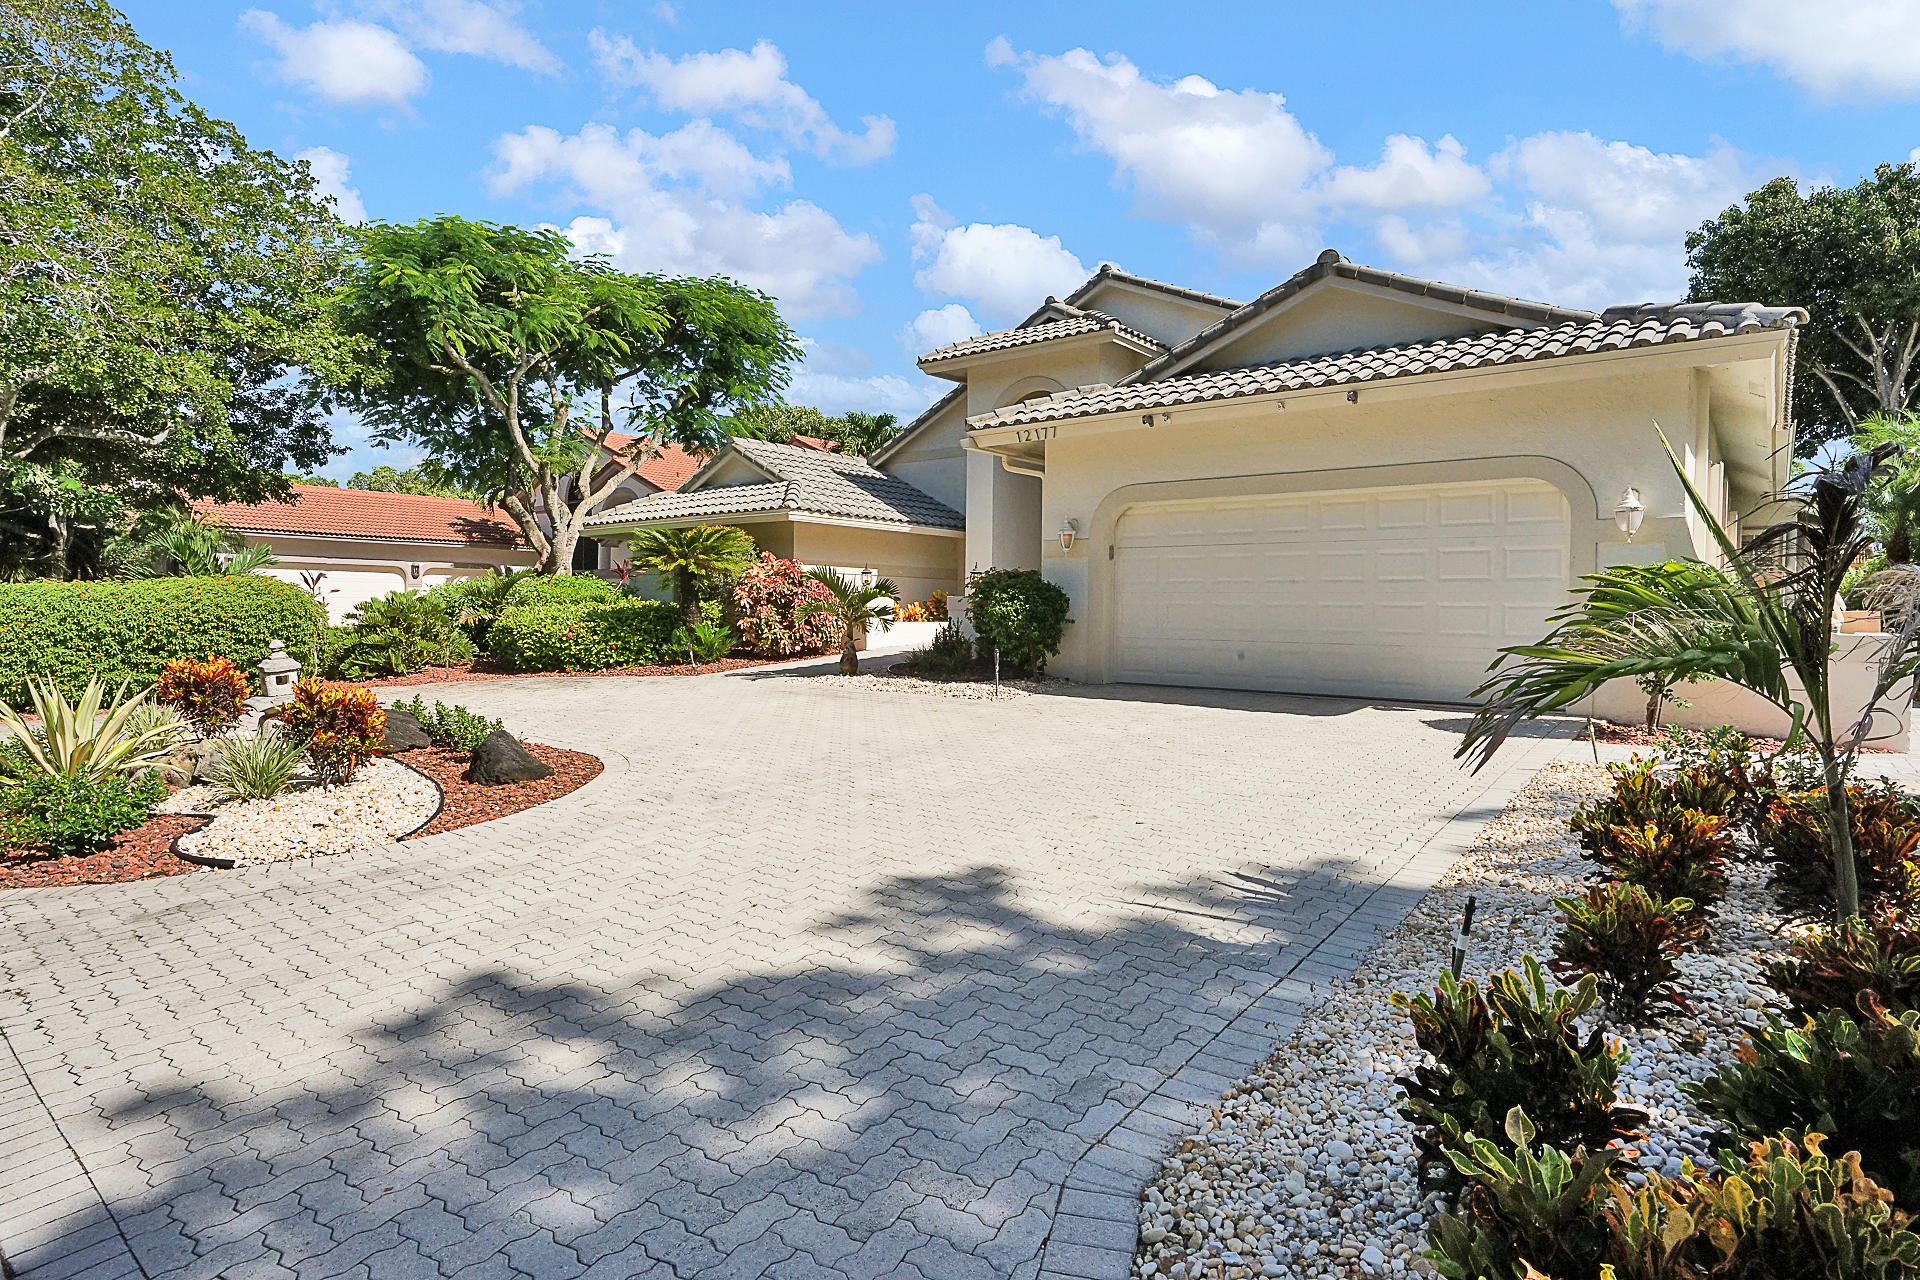 EAGLE TRACE CORAL SPRINGS